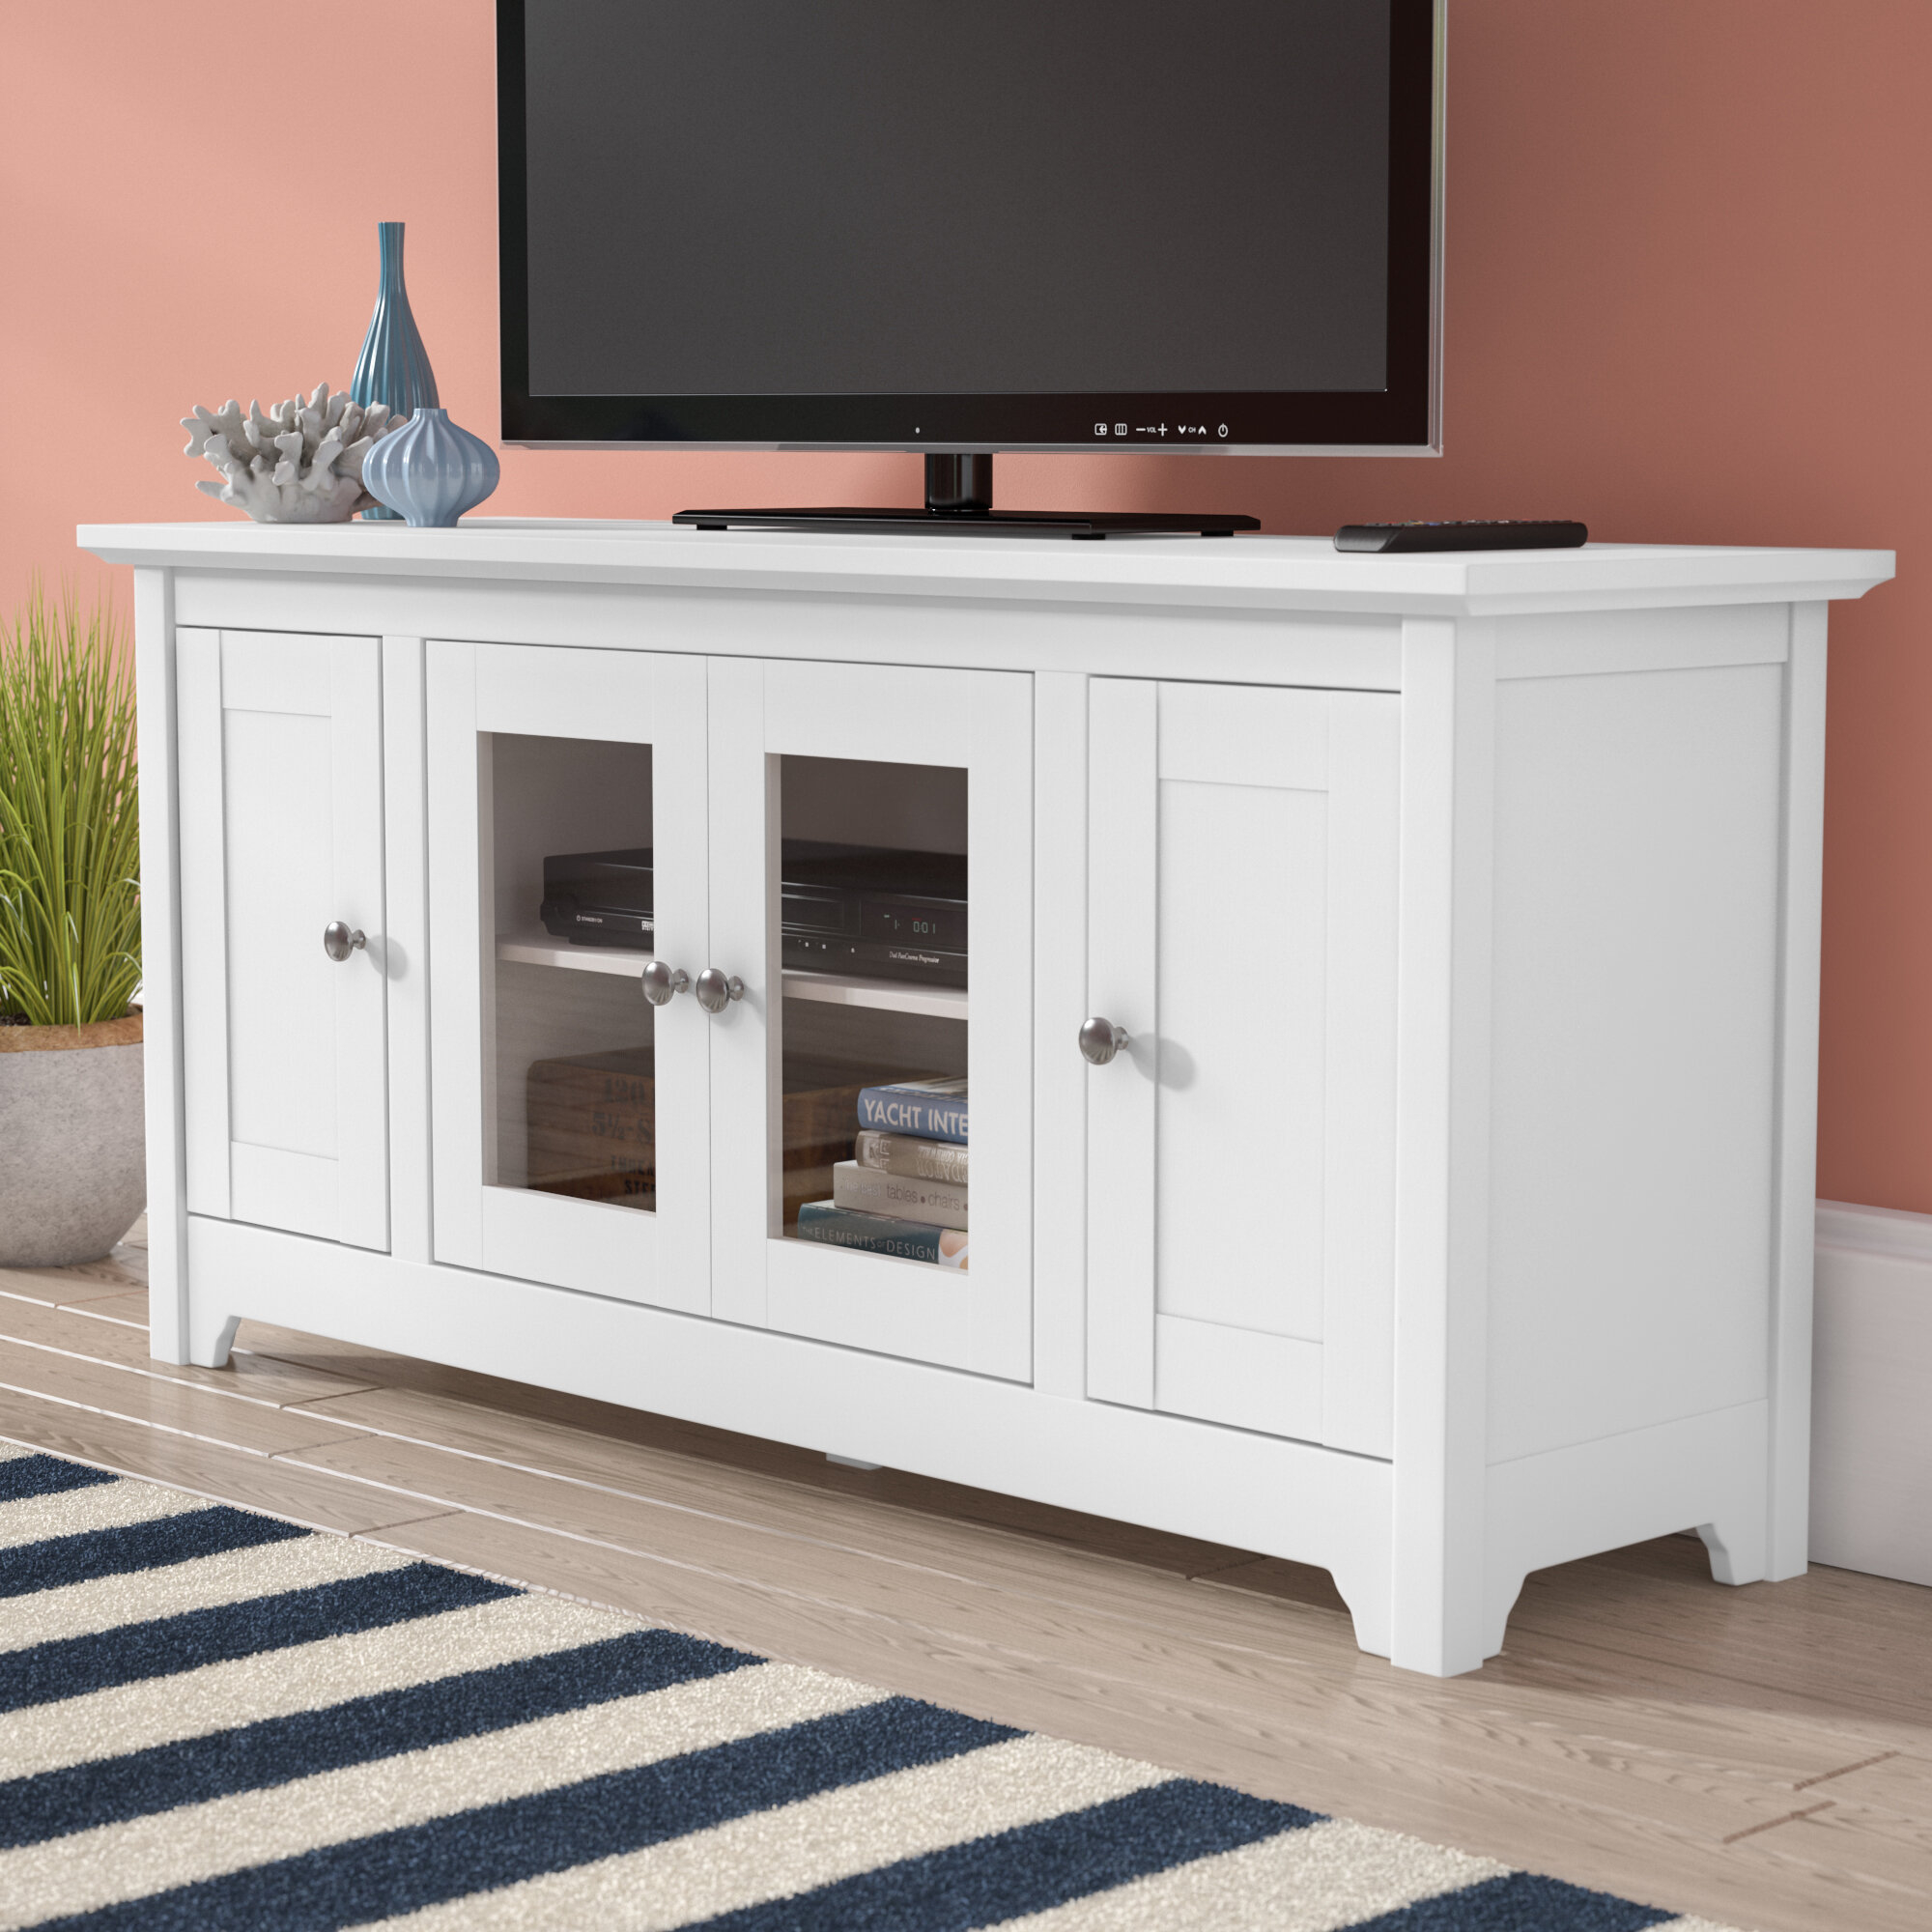 Tv Cabinet With Doors You Ll Love In 2021 Visualhunt